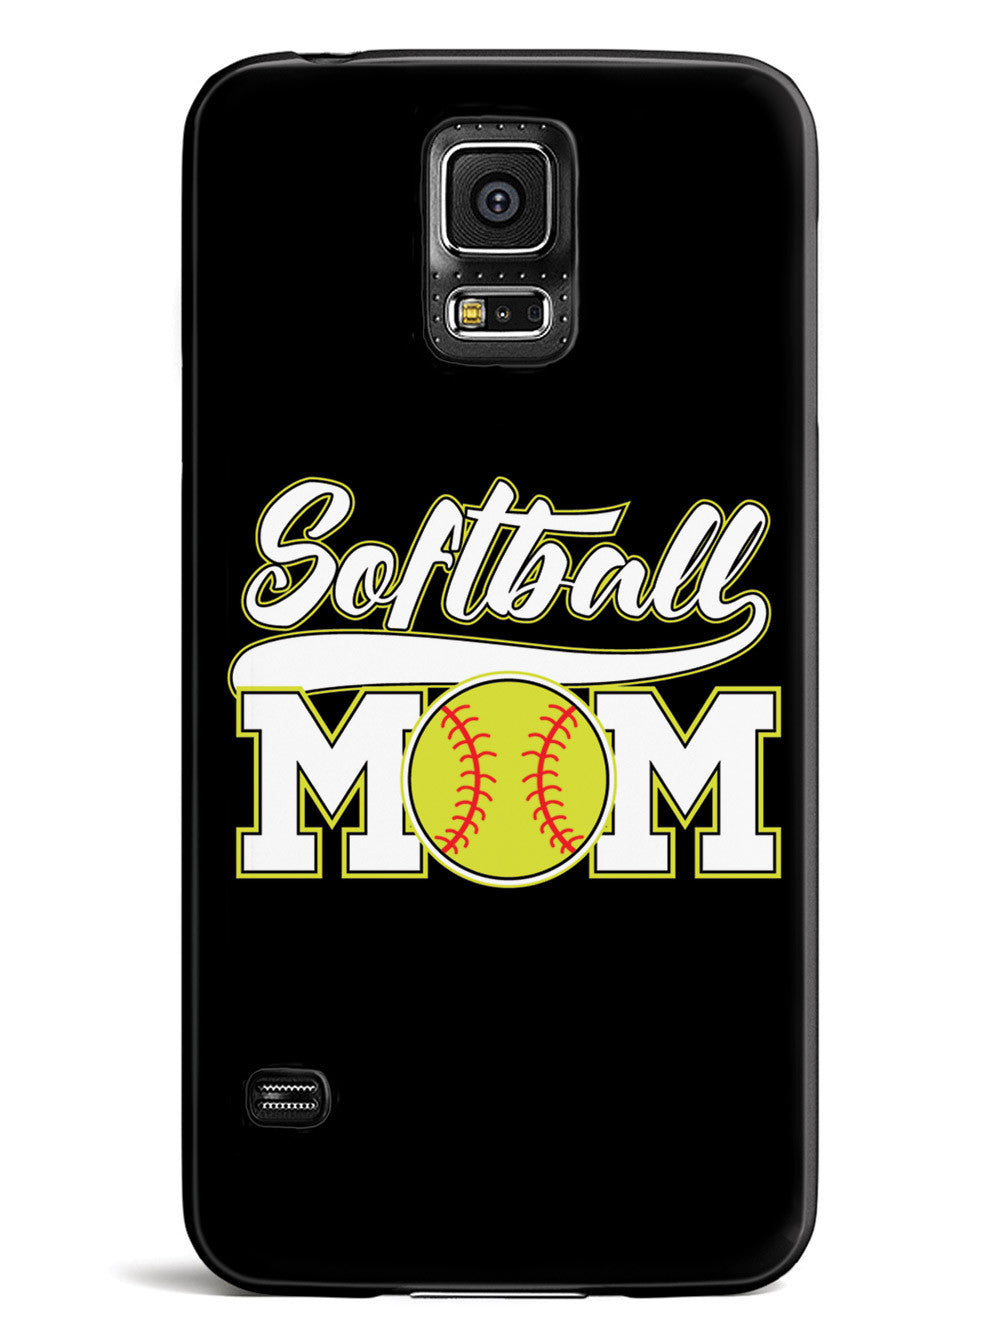 Softball Mom - Black Case